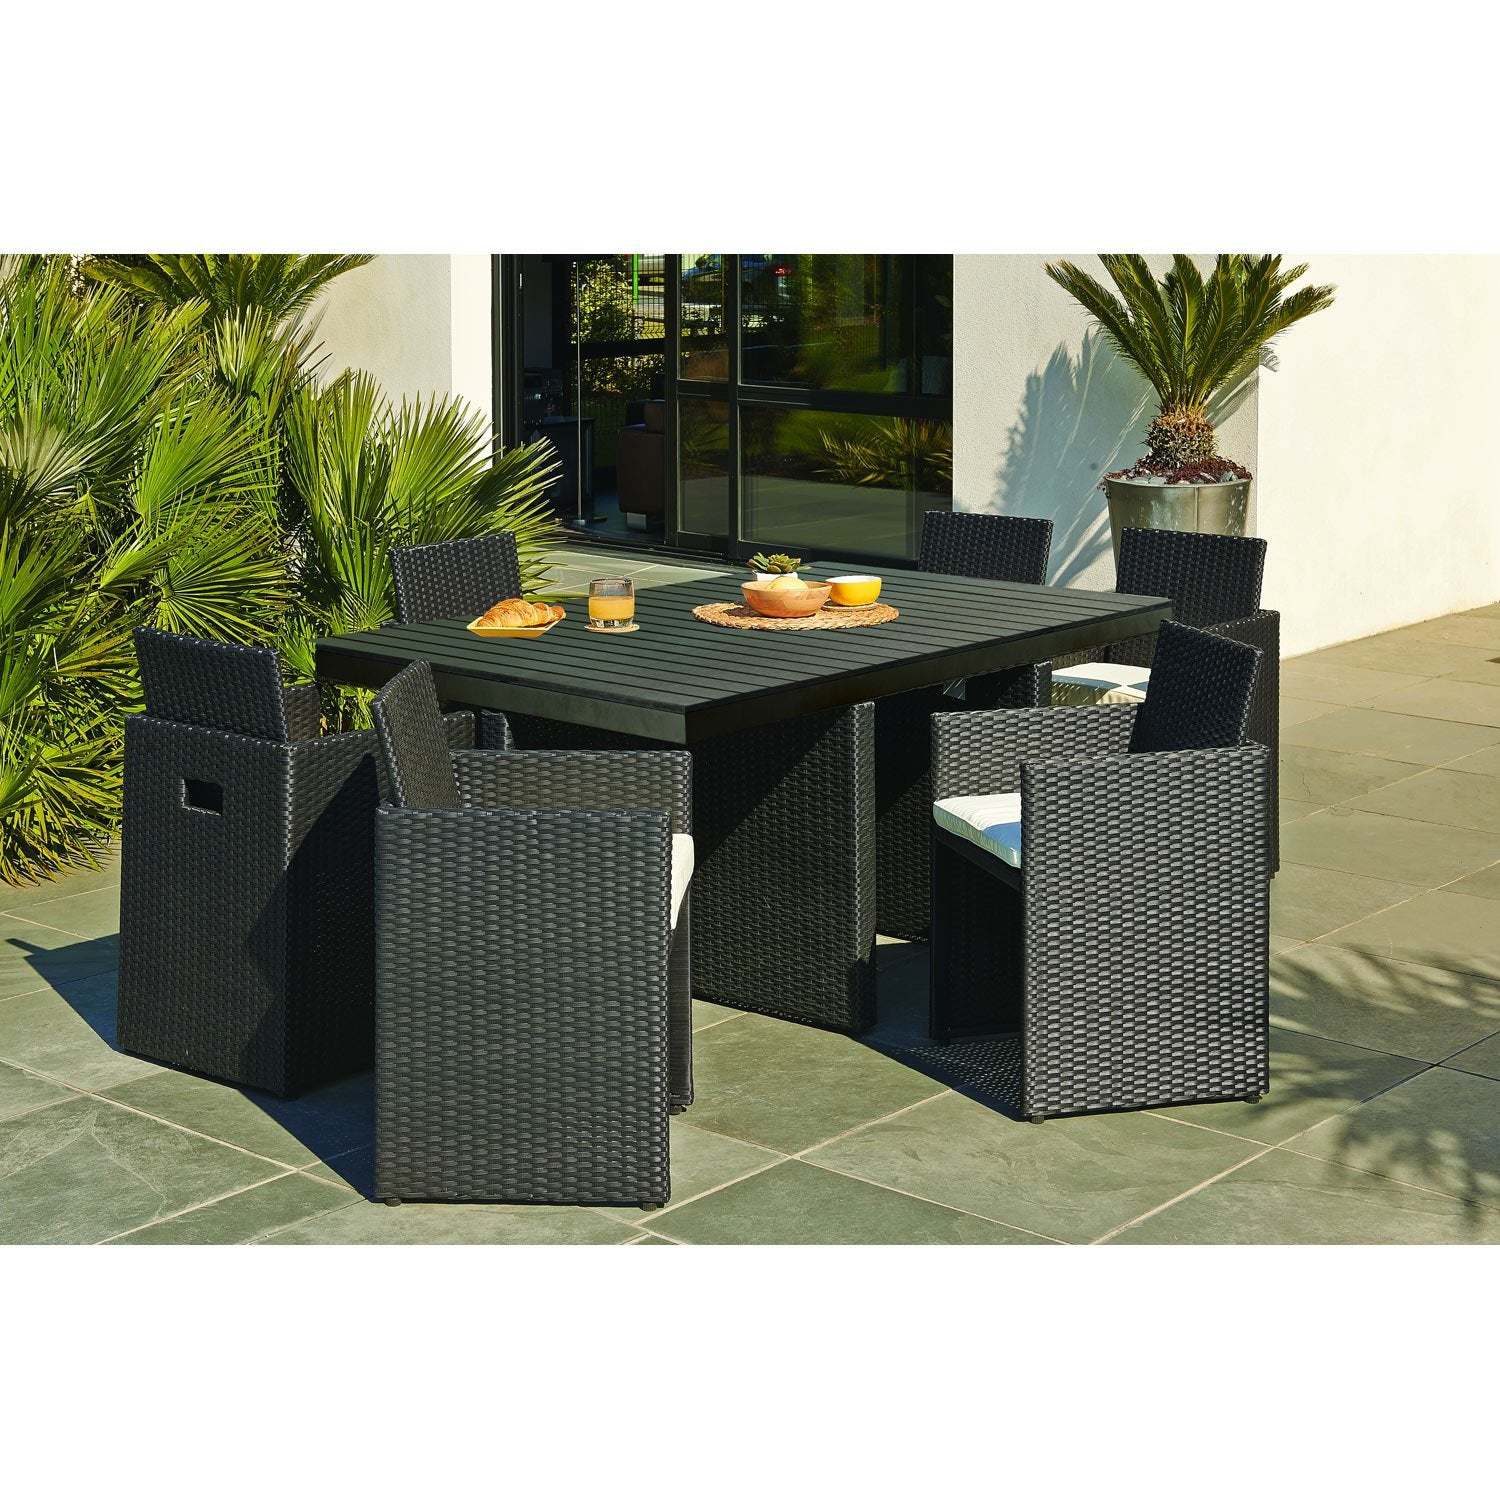 Salon de jardin encastrable r sine tress e noir 1 table for Leroy merlin salon de jardin